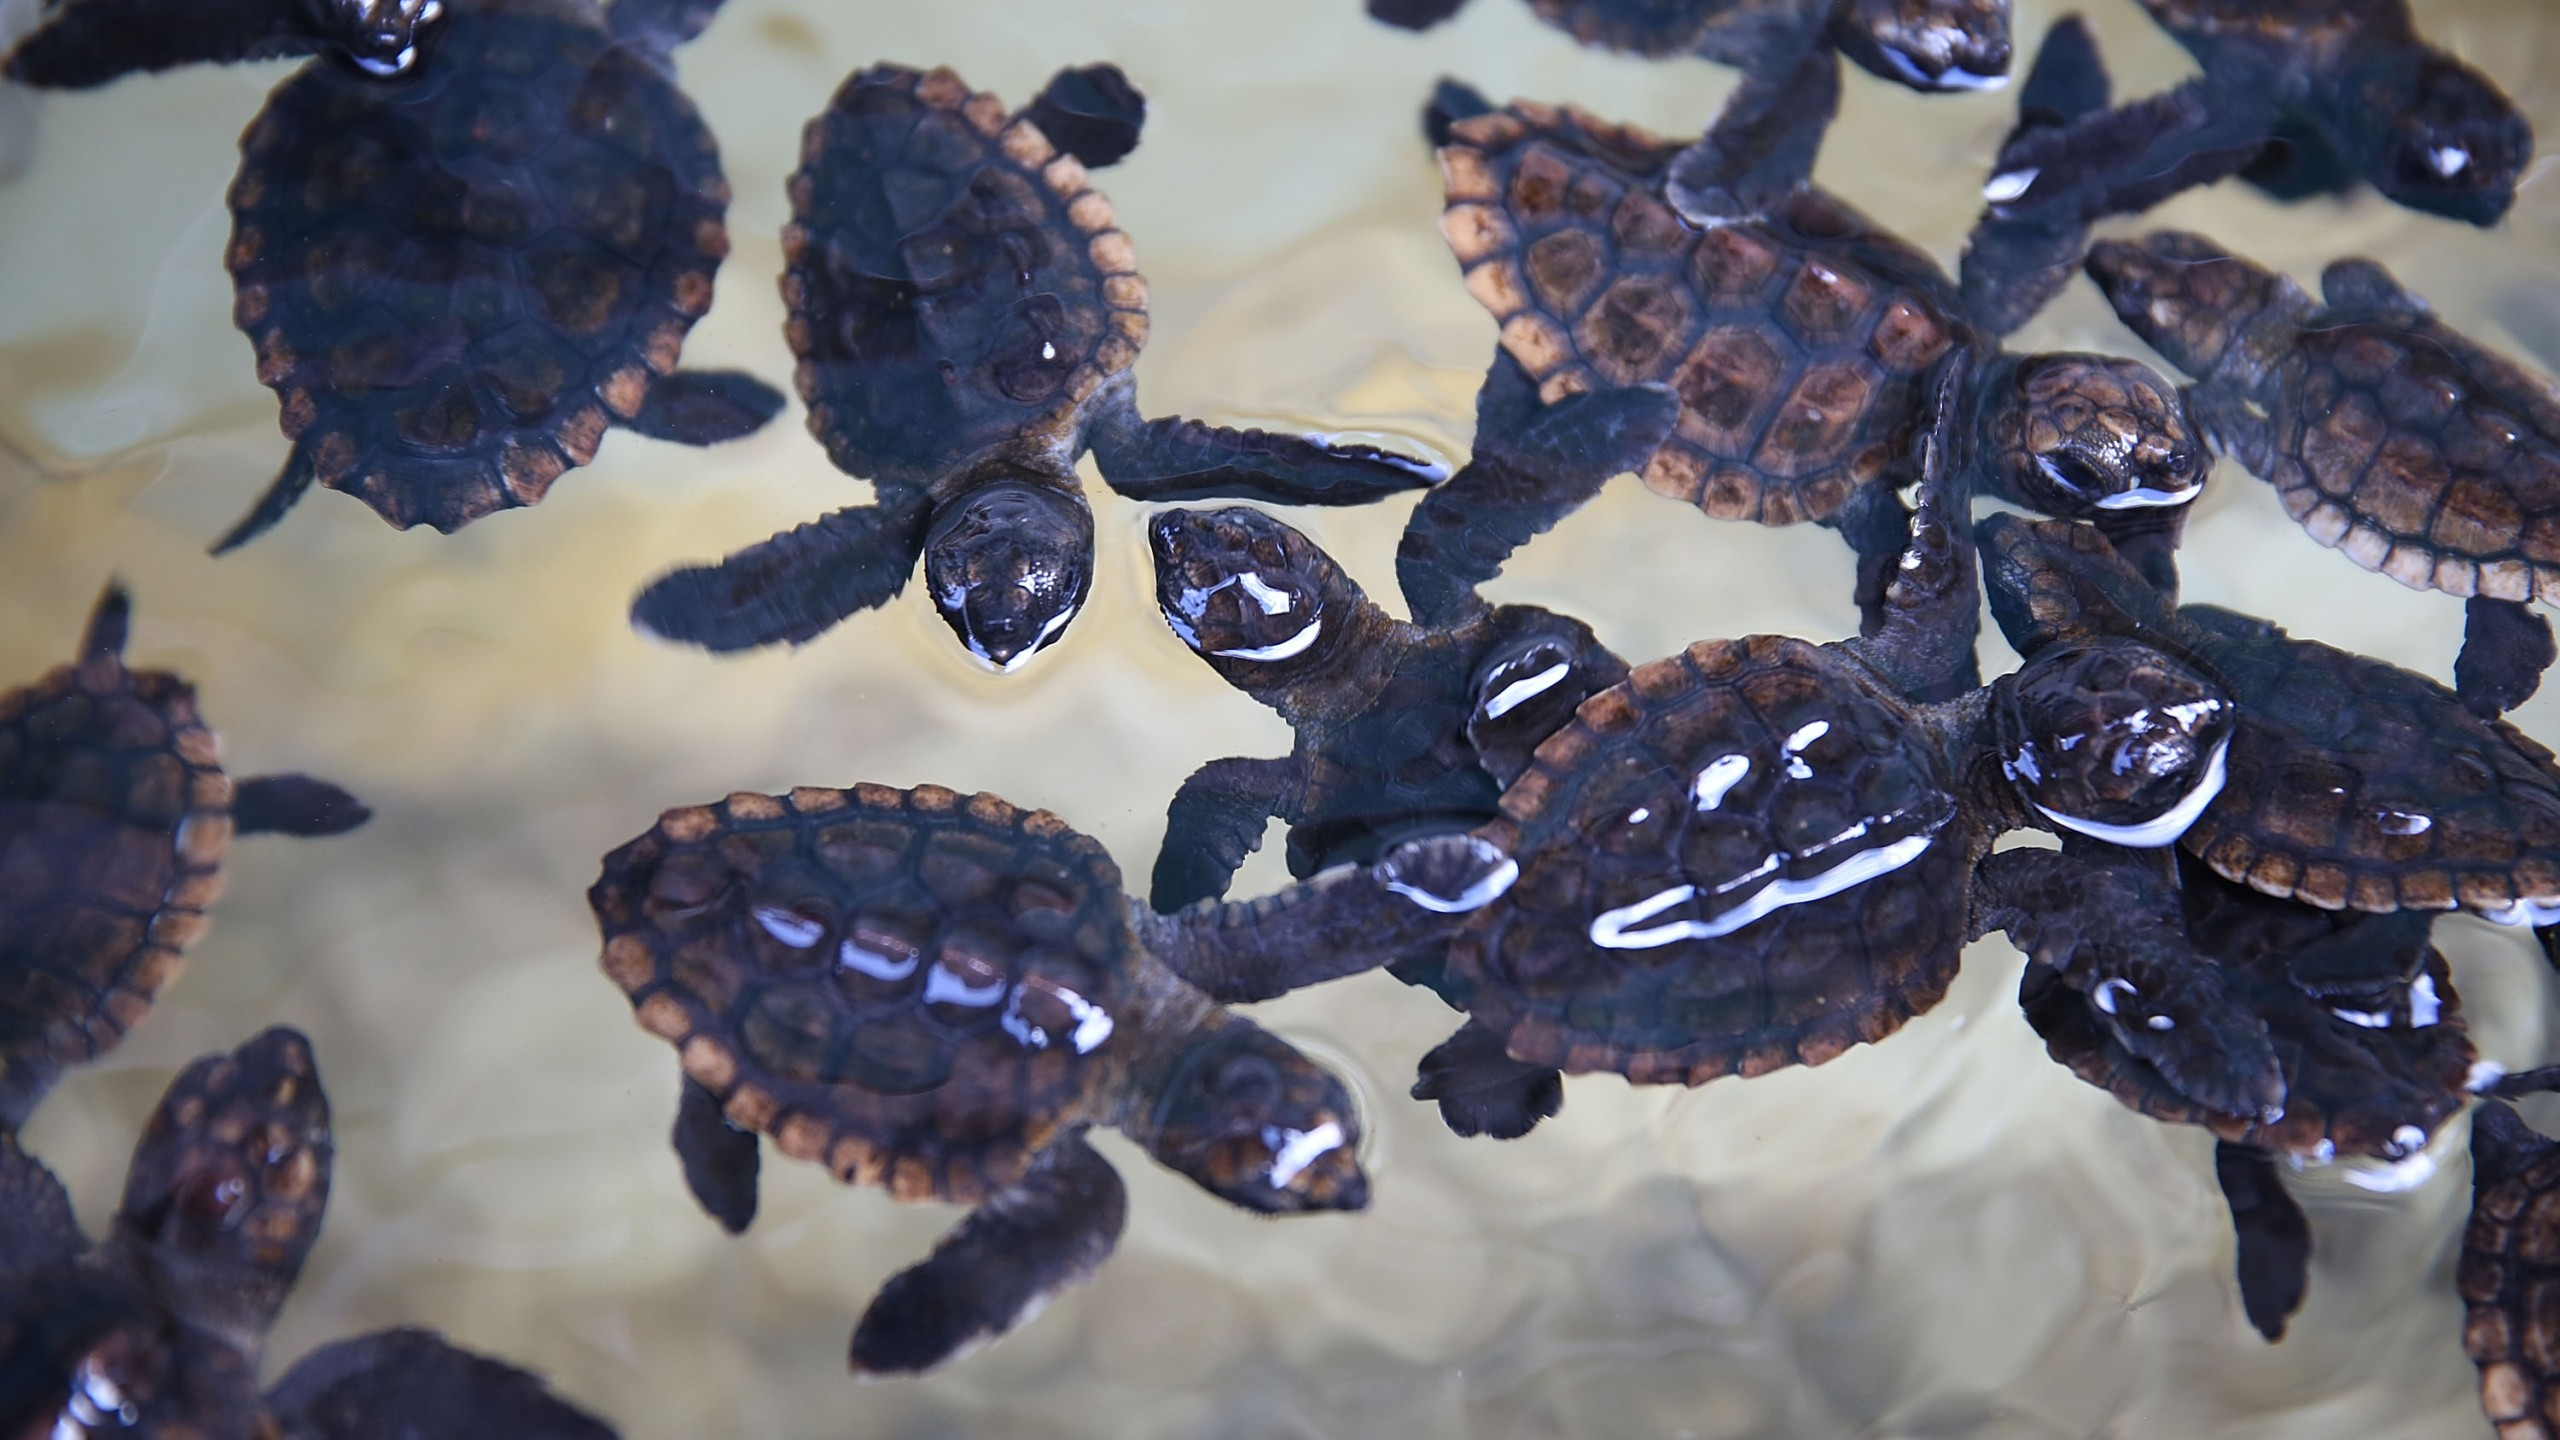 Some of the more than 570 baby sea turtles, including the Loggerhead and Green turtles, are seen before they are released into the Atlantic Ocean on July 27, 2015, in Boca Raton, Florida. (Credit: Joe Raedle/Getty Images)